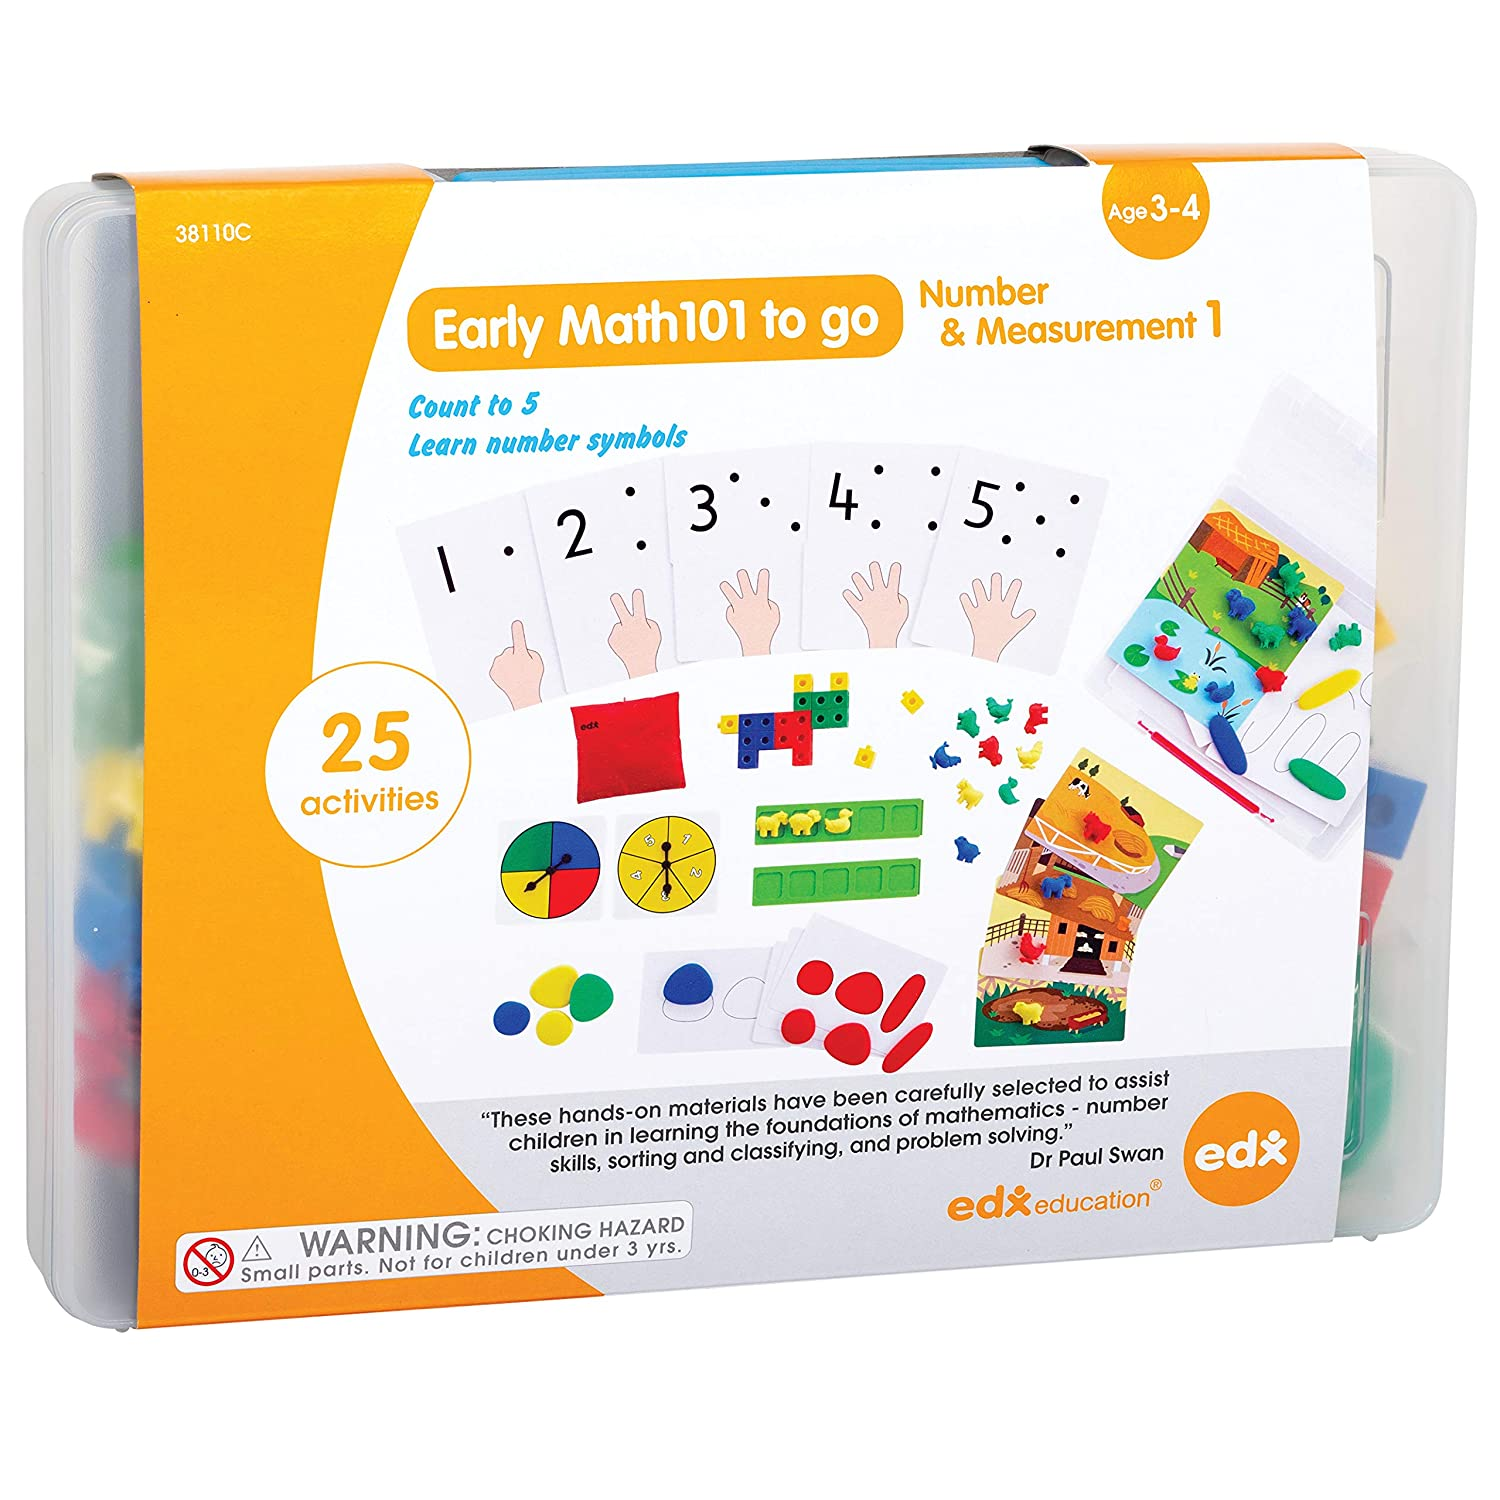 Edx Education Early Math101 to go - Ages 3-4 - Number & Measurement - in Home Learning Kit for Kids - Homeschool Math Resources with 25+ Guided Activities